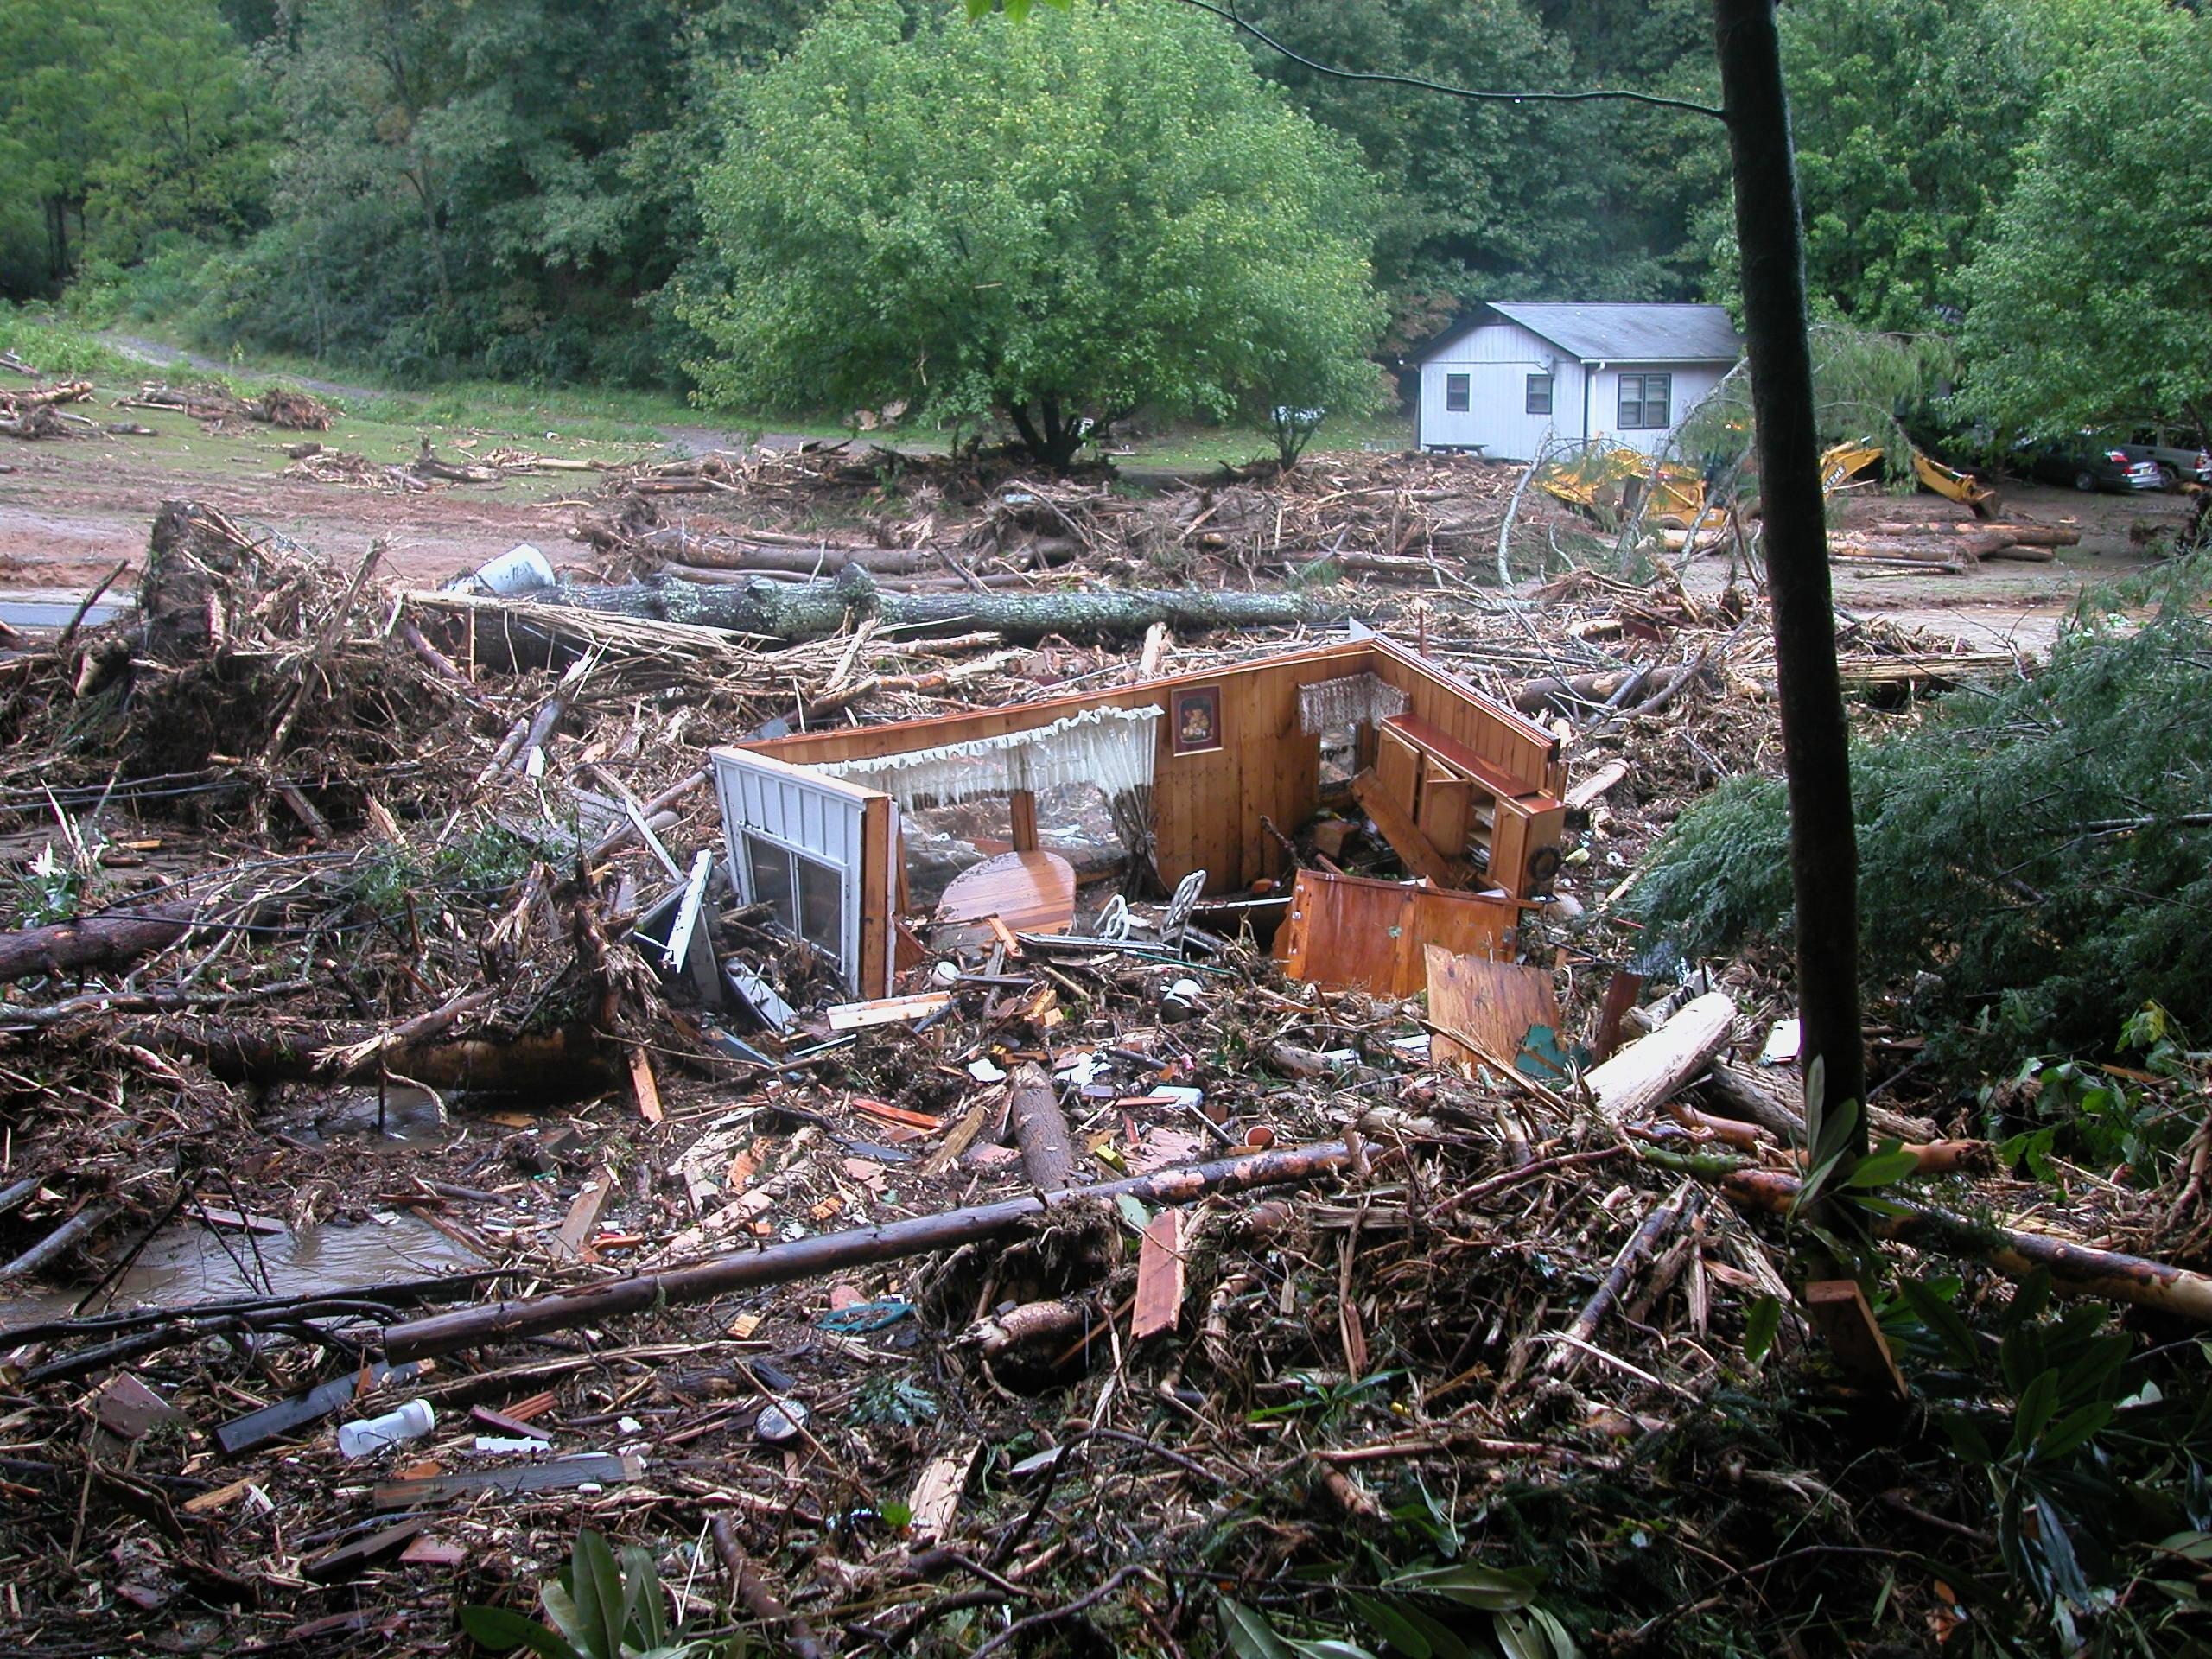 Polk County is dealing with immediate needs after its recent mudslide. Some 14 years ago, it was Macon County residents who were dealing with a devastating mudslide. Lessons learned then could prove helpful now, including how long recovery takes. (Photo credit: Macon Co. Emergency Services)